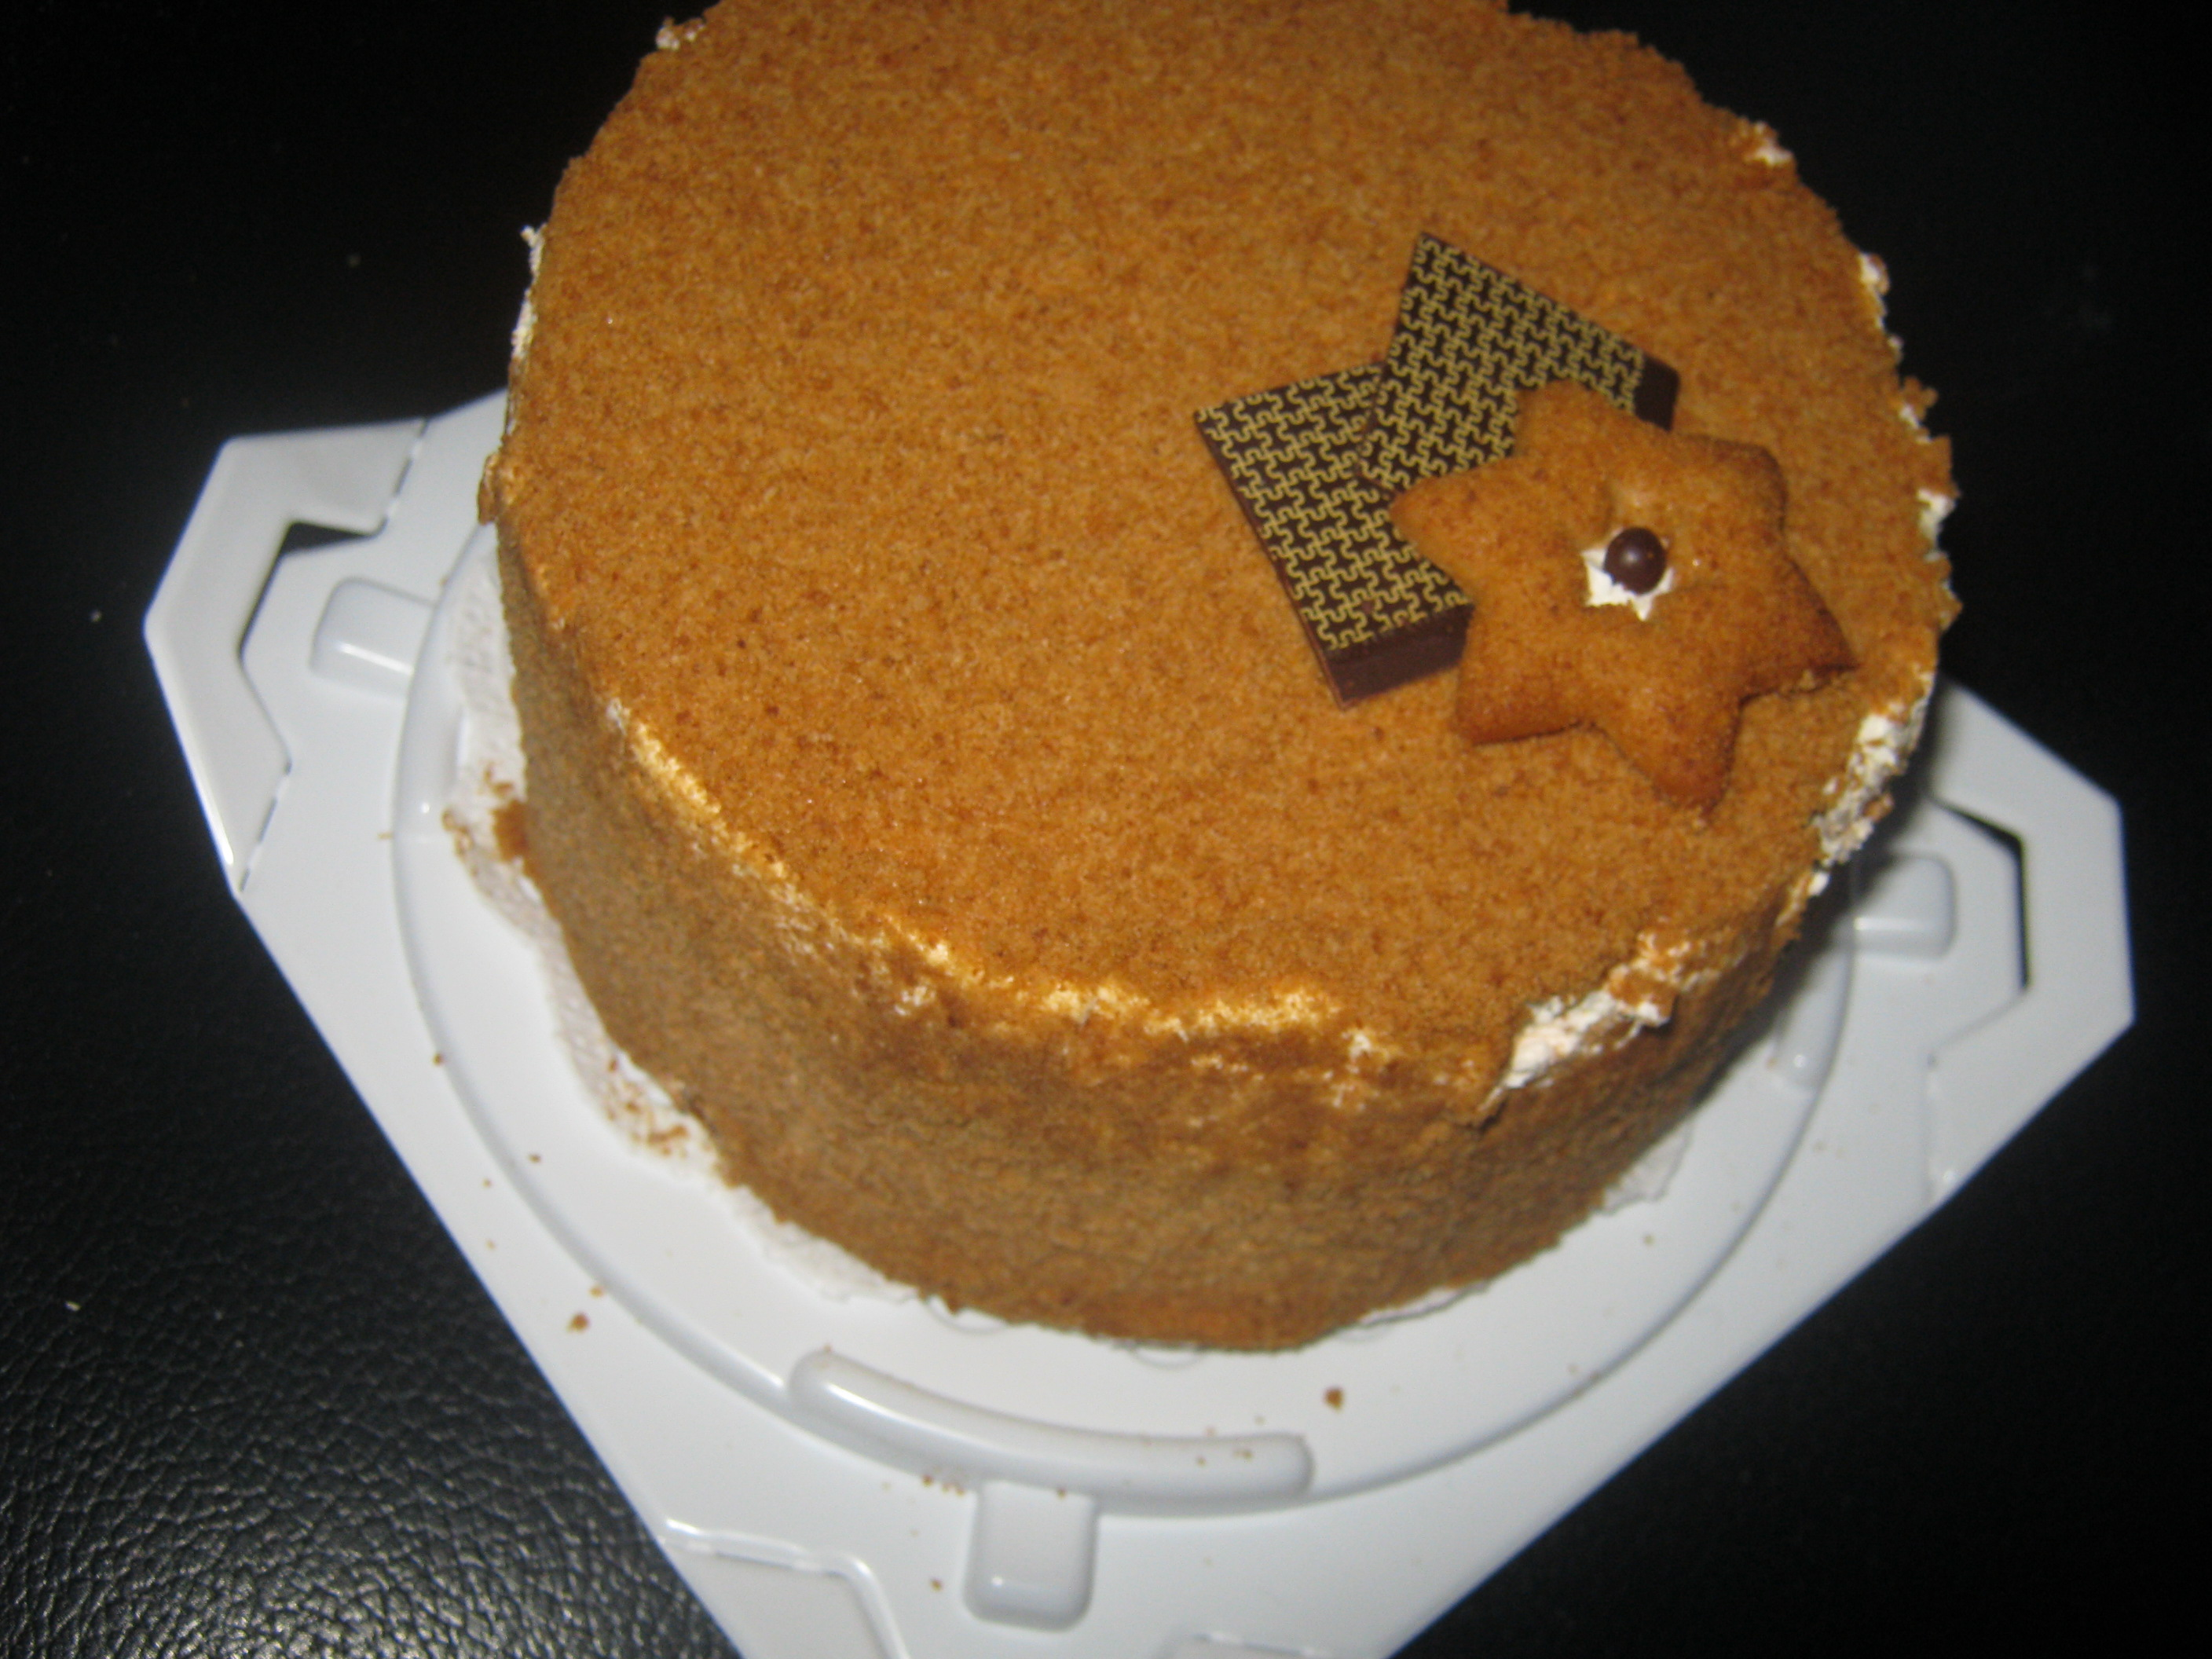 File:Honey cake.JPG - Wikimedia Commons